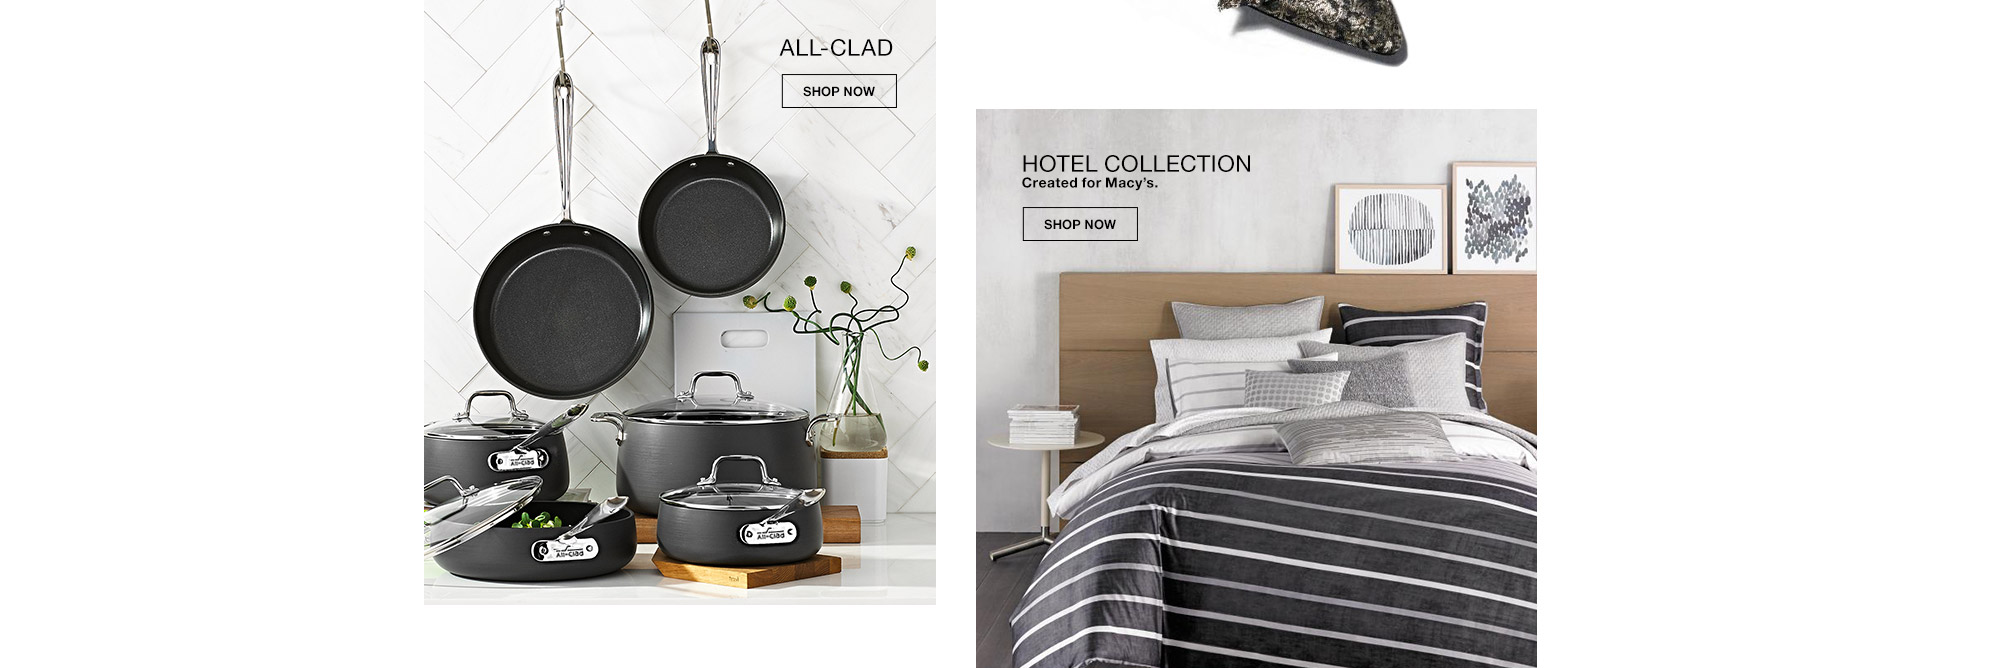 all clad, hotel collection. created for macys.